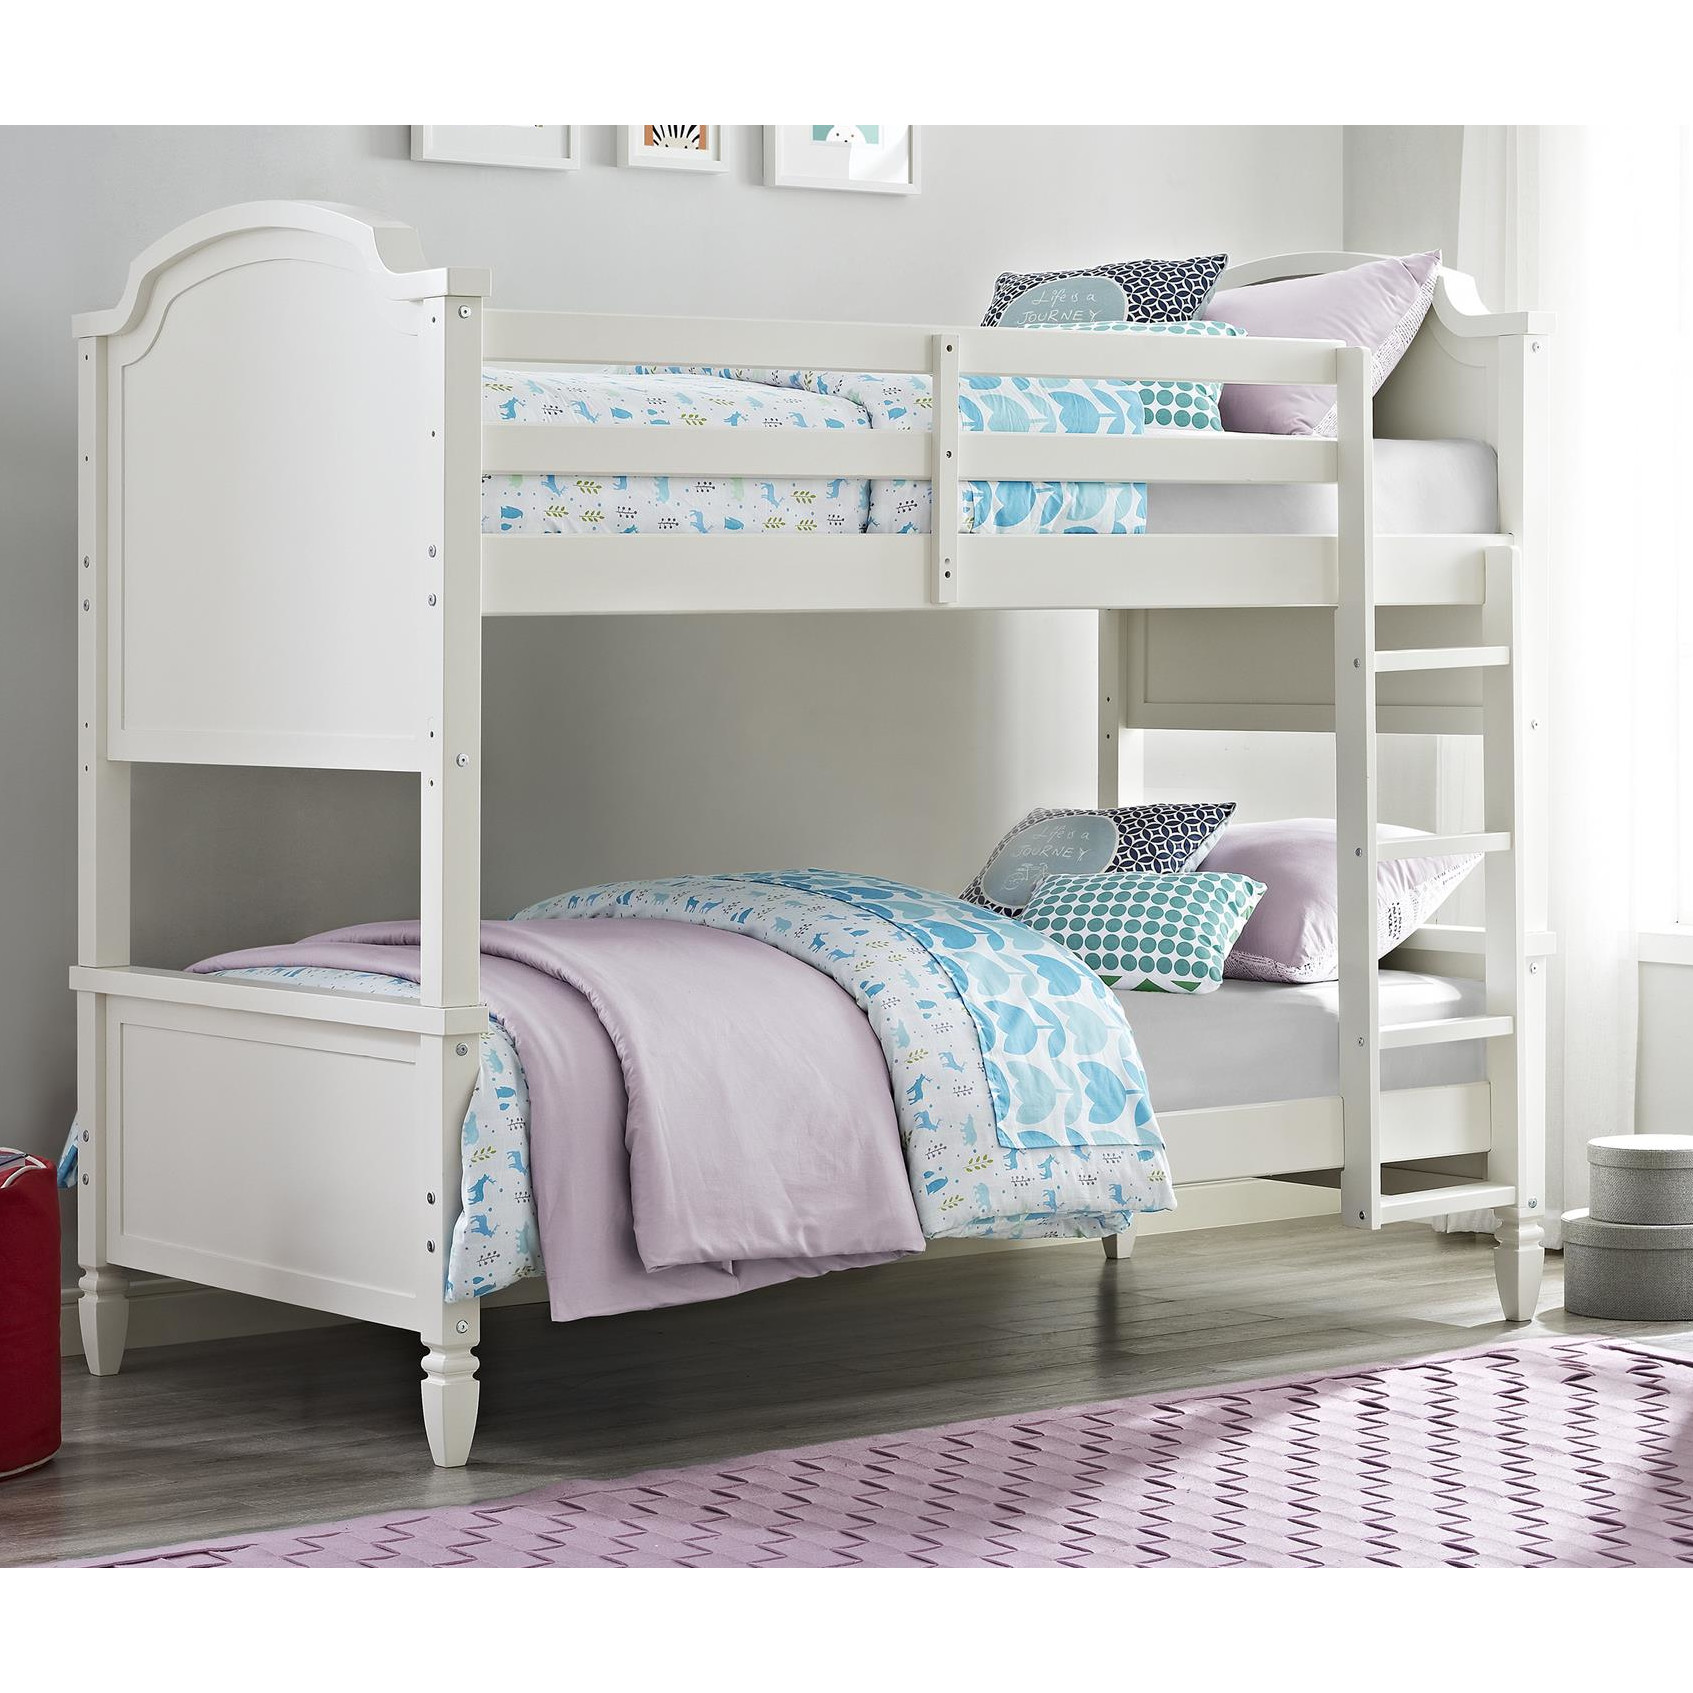 blue and white bedroom furniture photo - 5